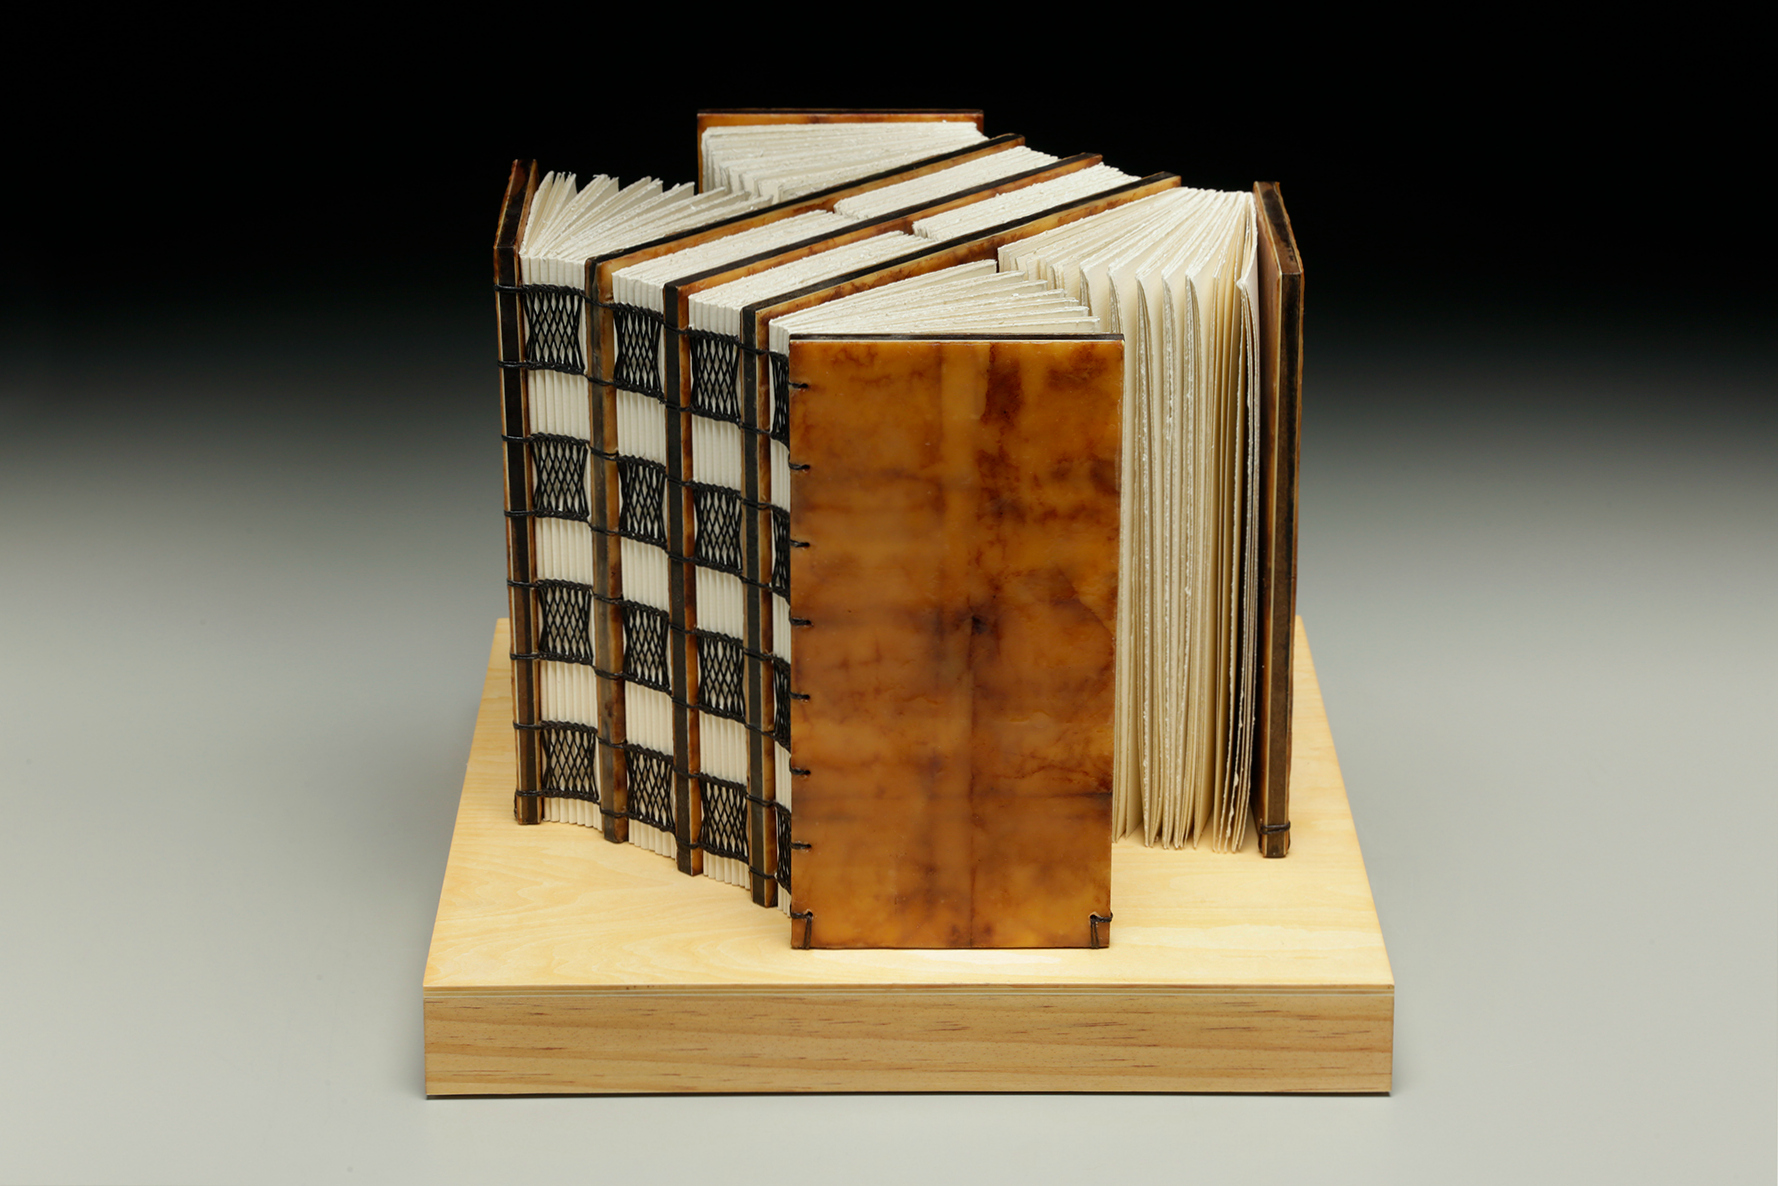 Ever Expanding by Erin Keane : sculptural book : encaustic beeswax covers : 12 x 12 x 9.5 inches